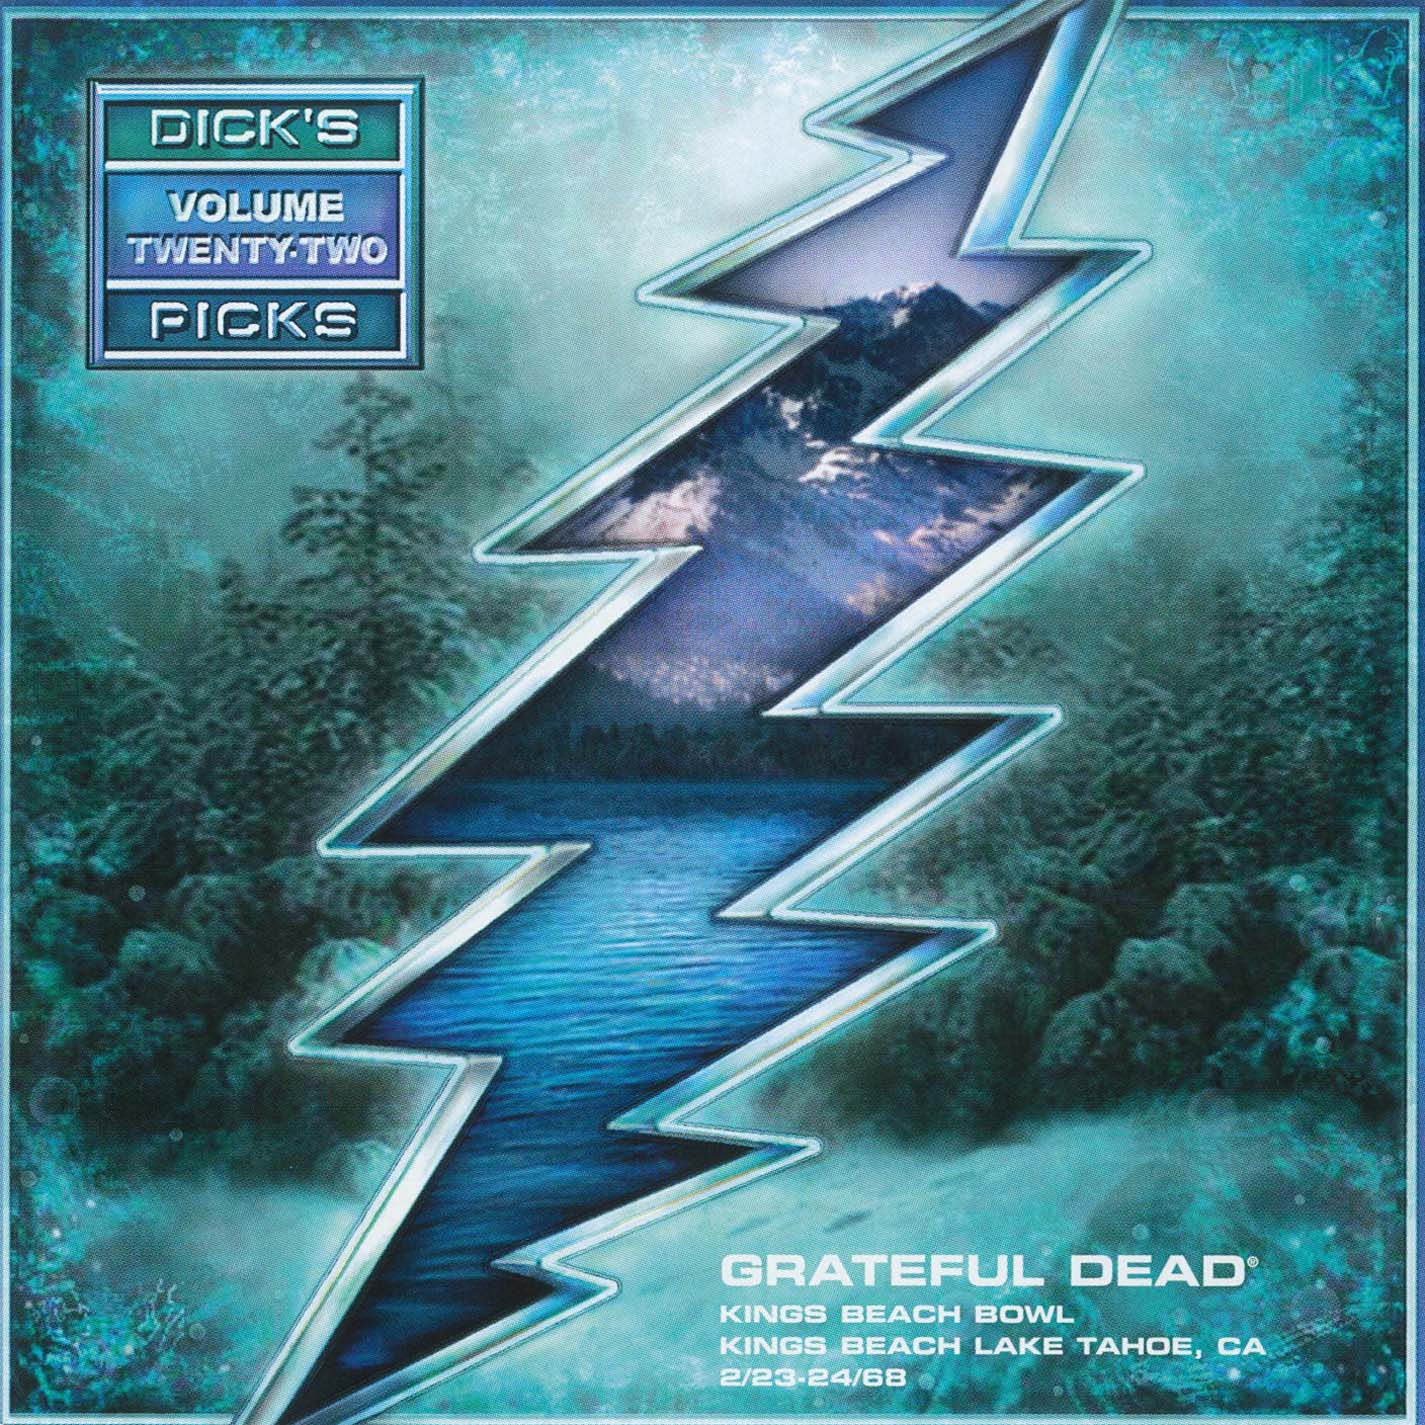 Grateful Dead Dick's Picks 22 album cover artwork